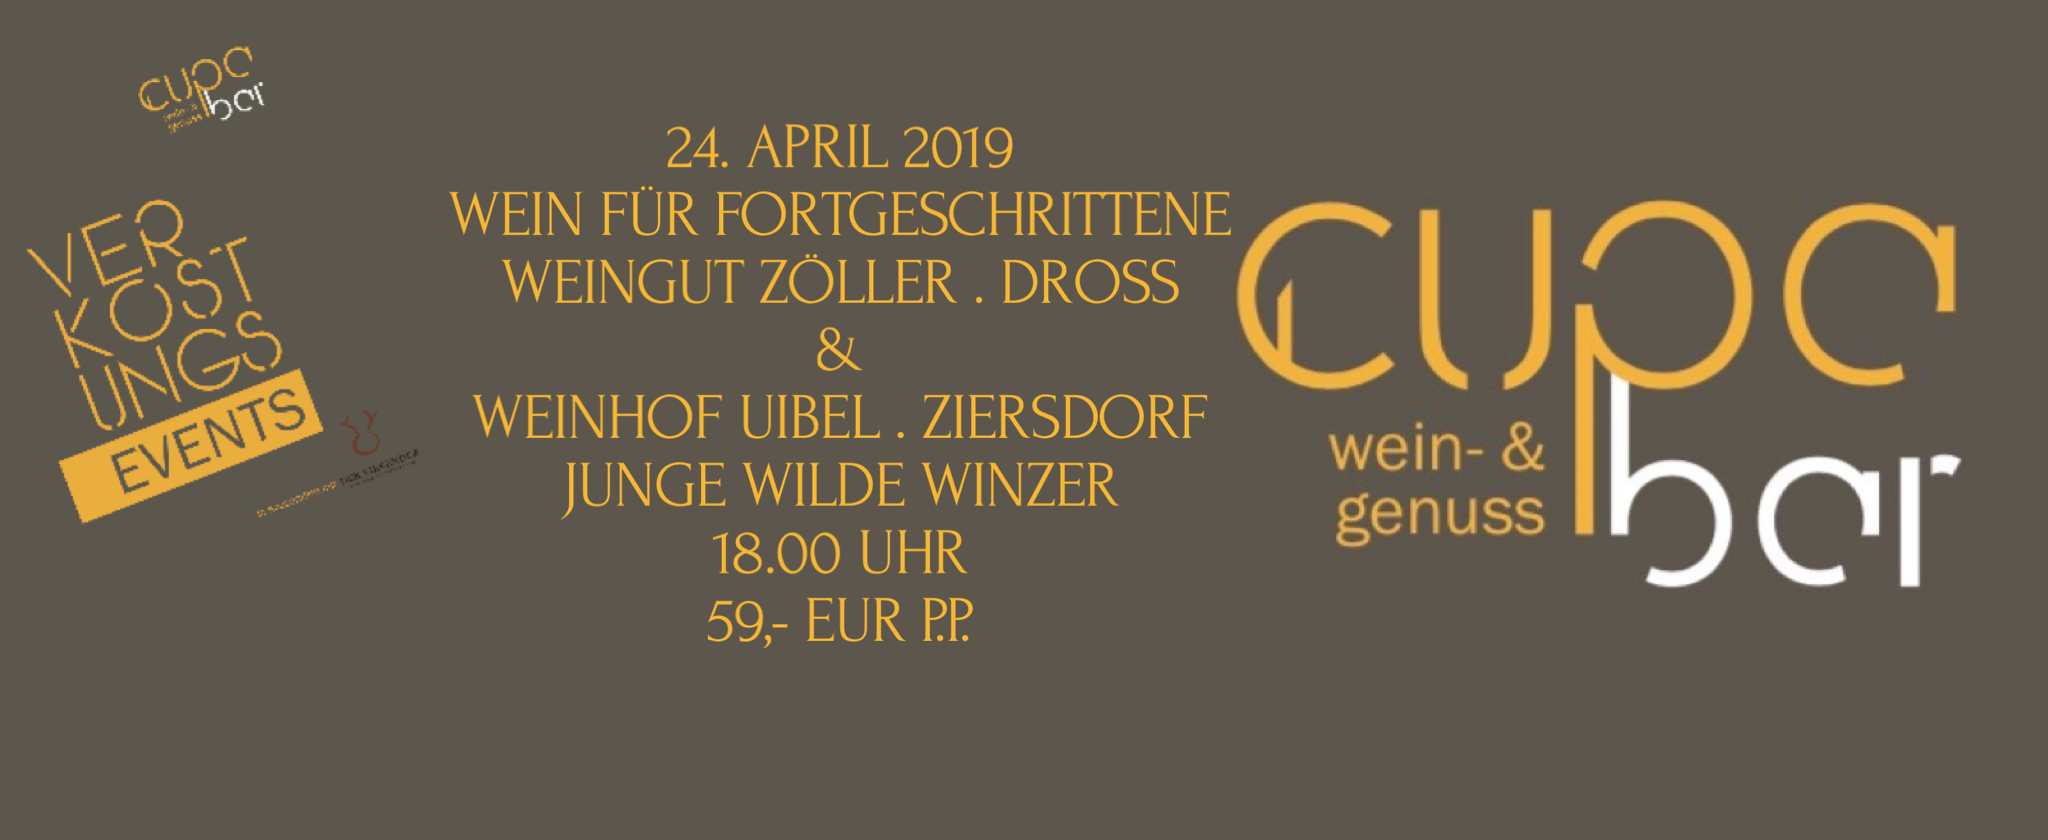 Verkostungs Events . Cupa Bar . Weingut Zöller & Weinhof Uibel